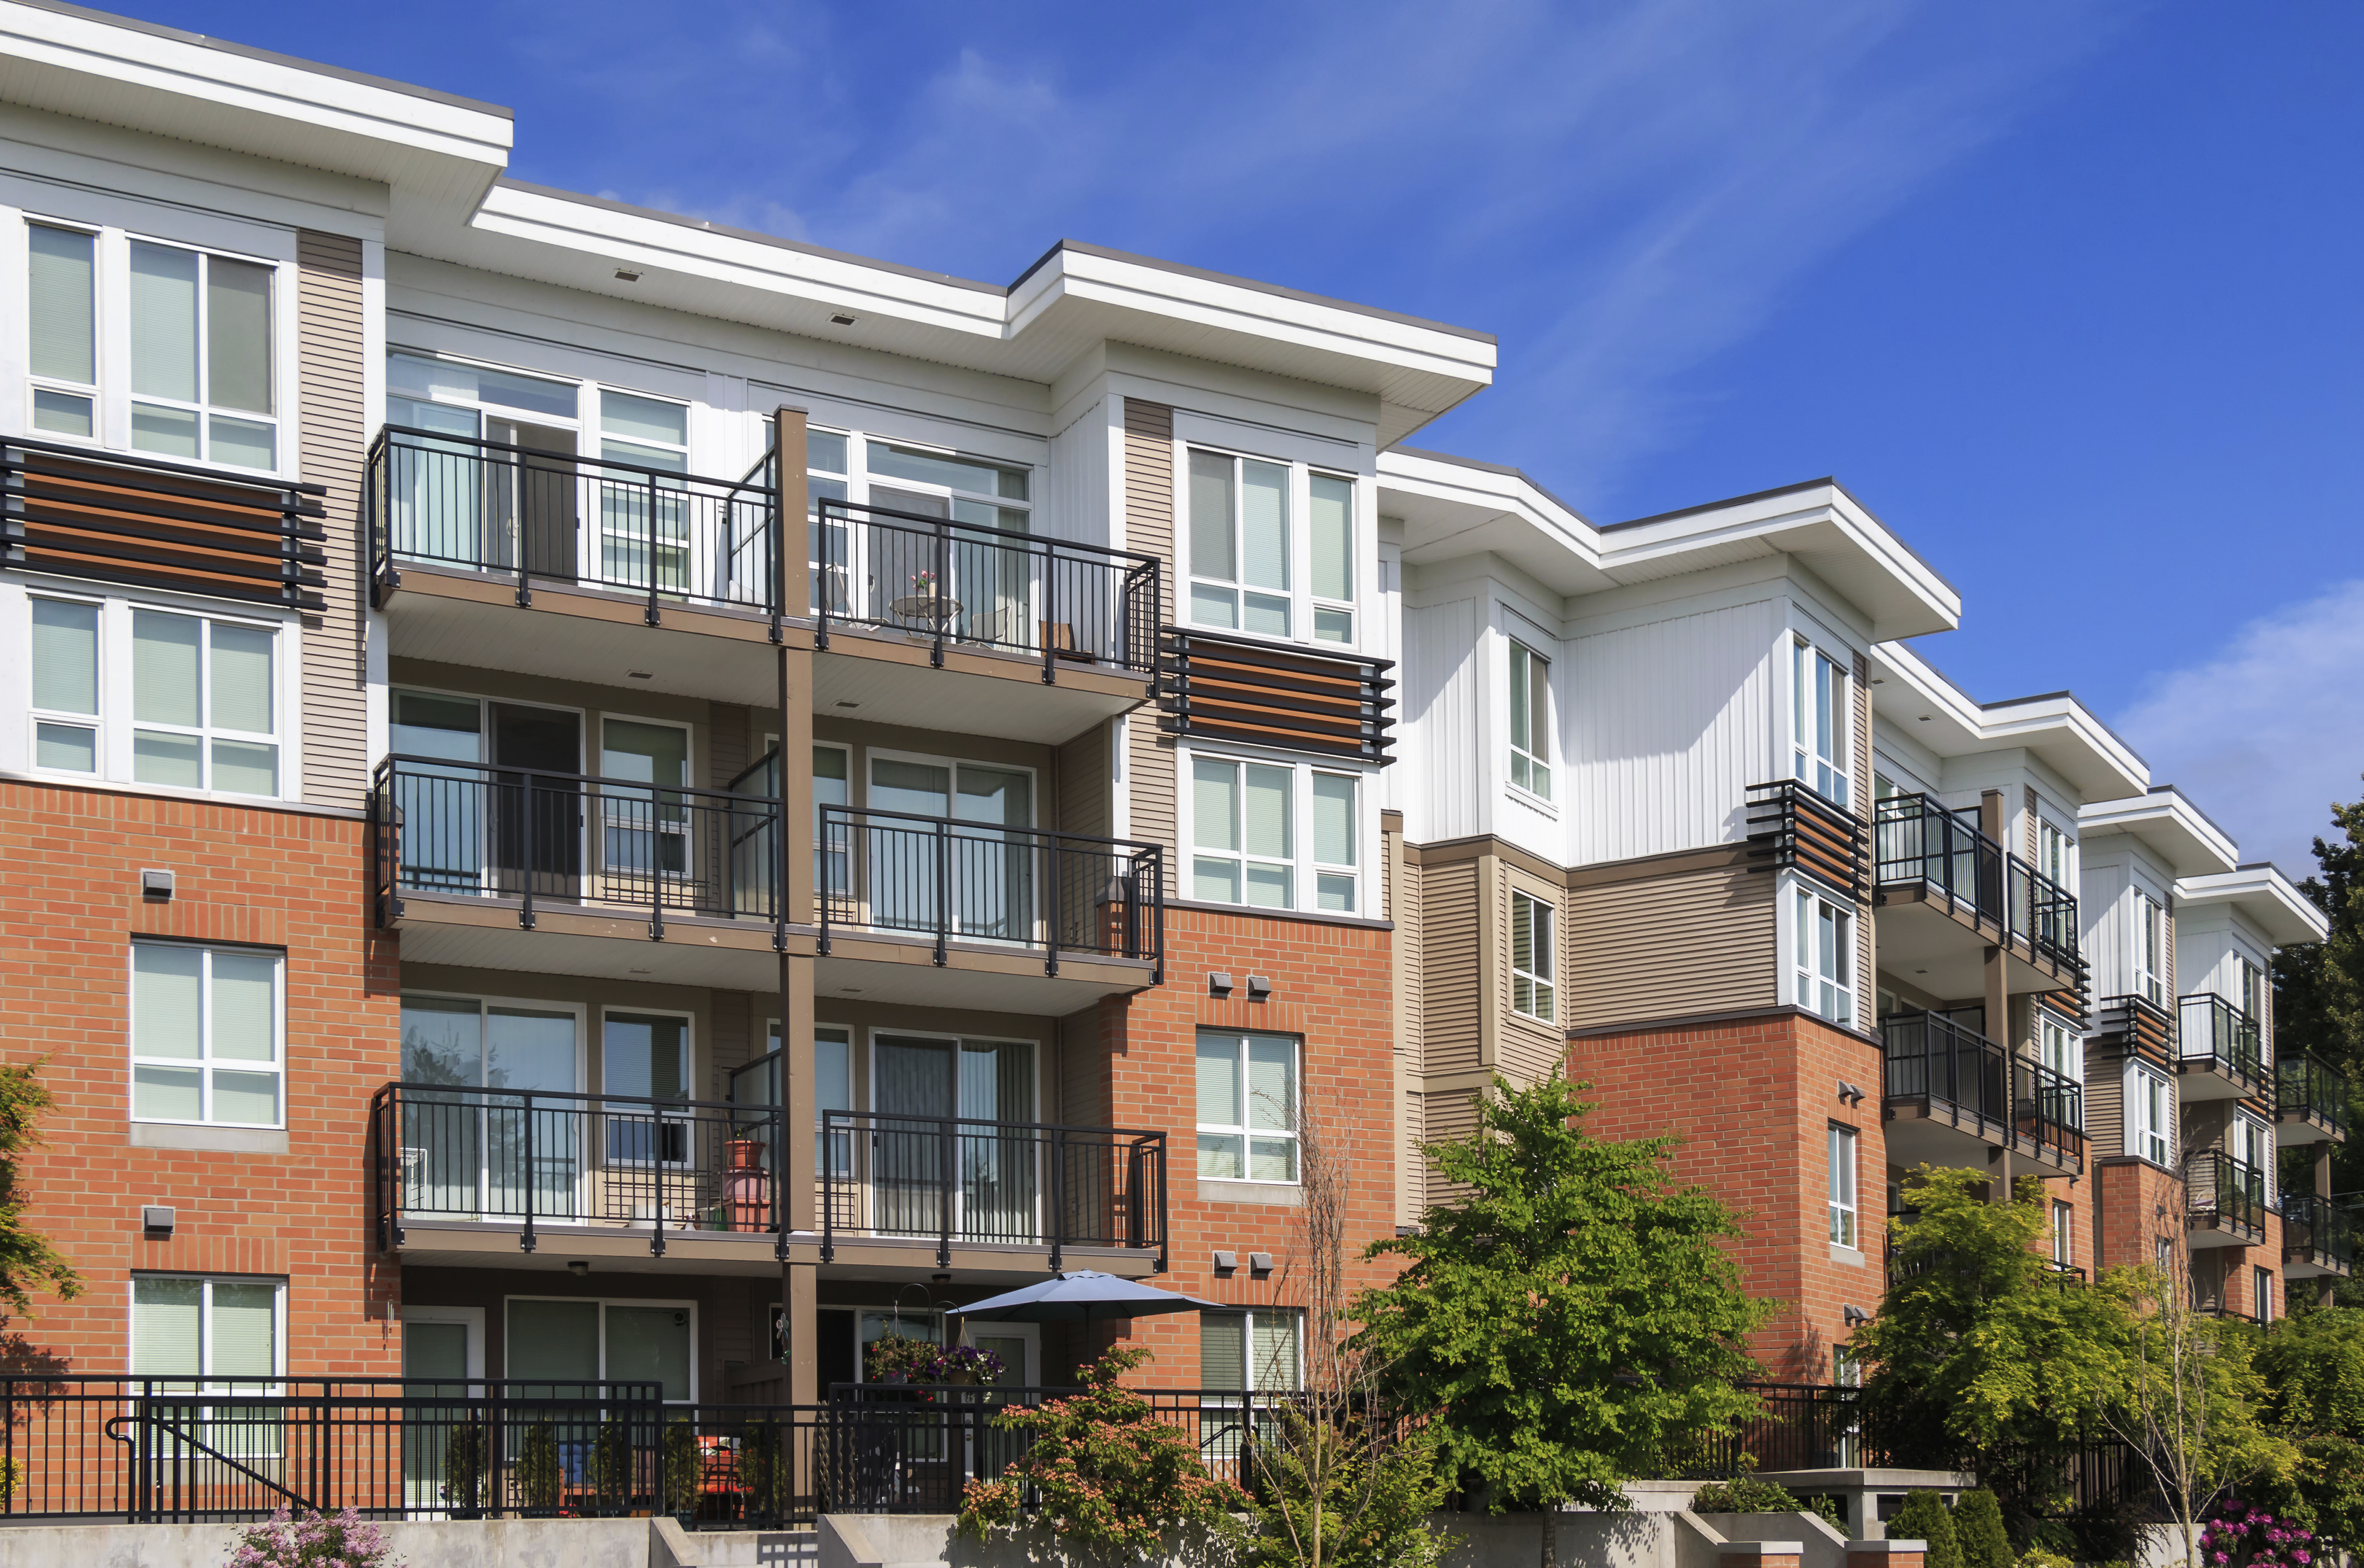 The 10 Best Markets for Multifamily Investment | National ...